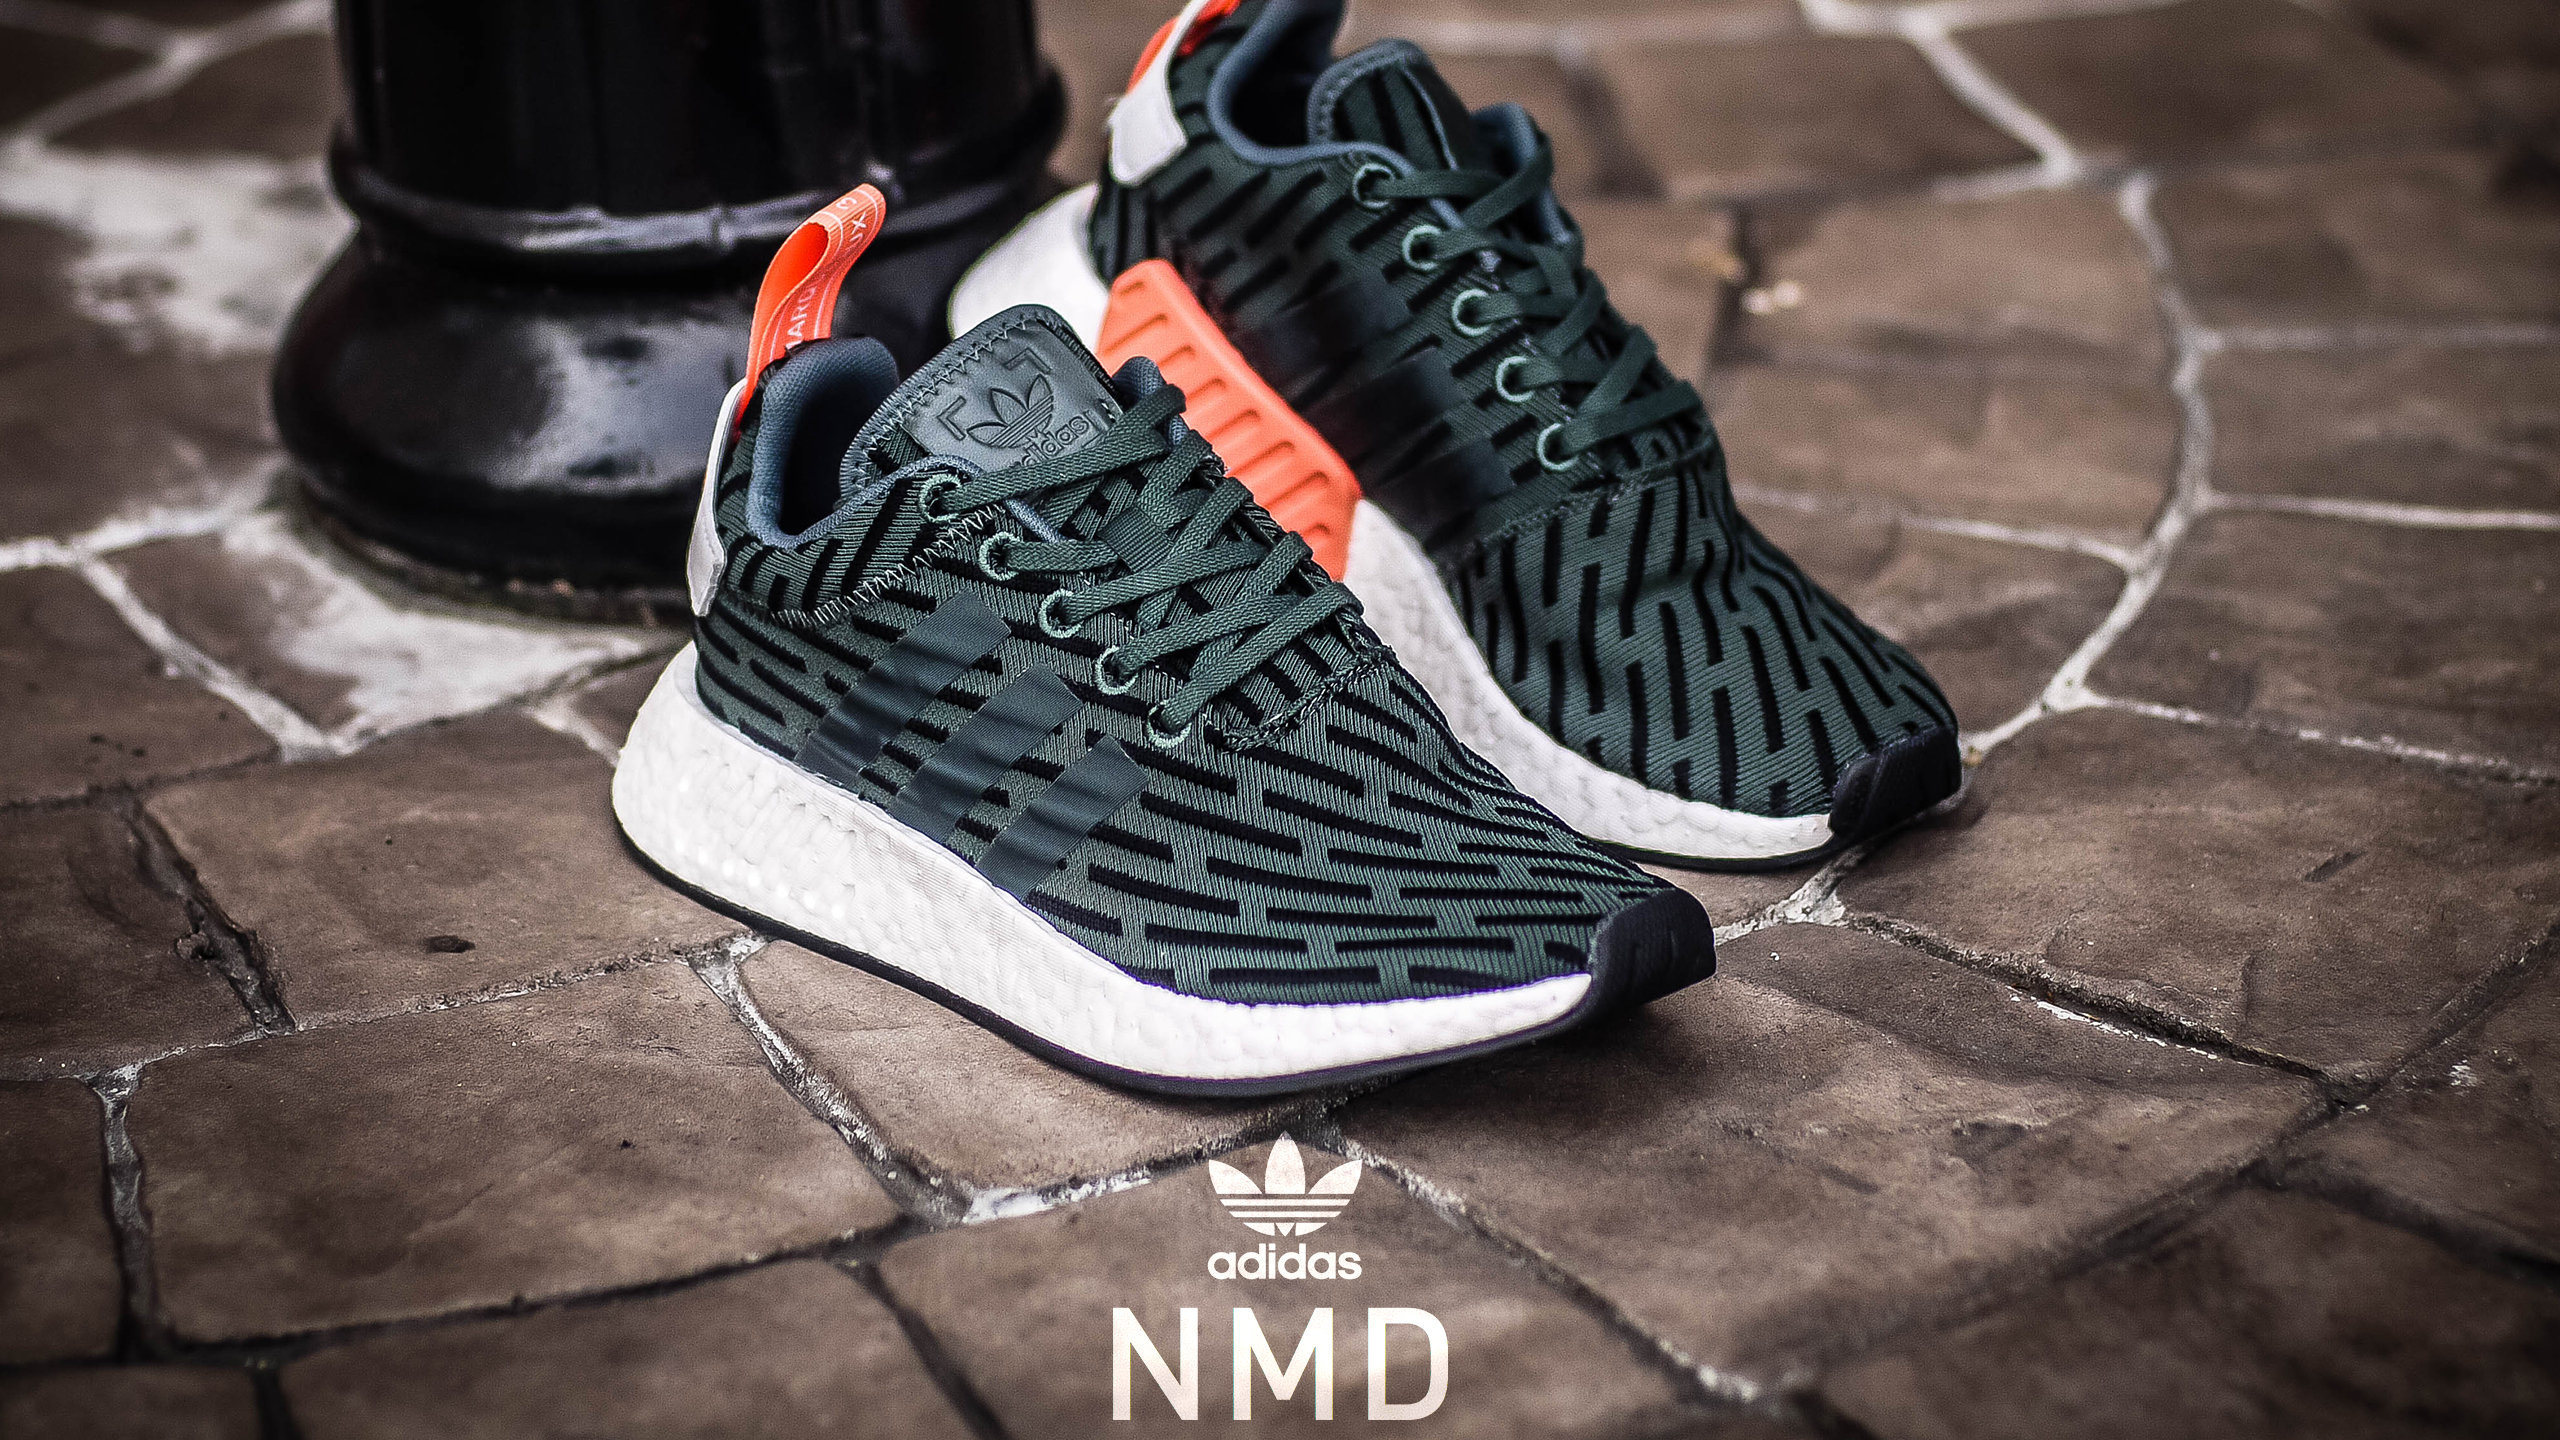 adidas nmd iphone wallpaper